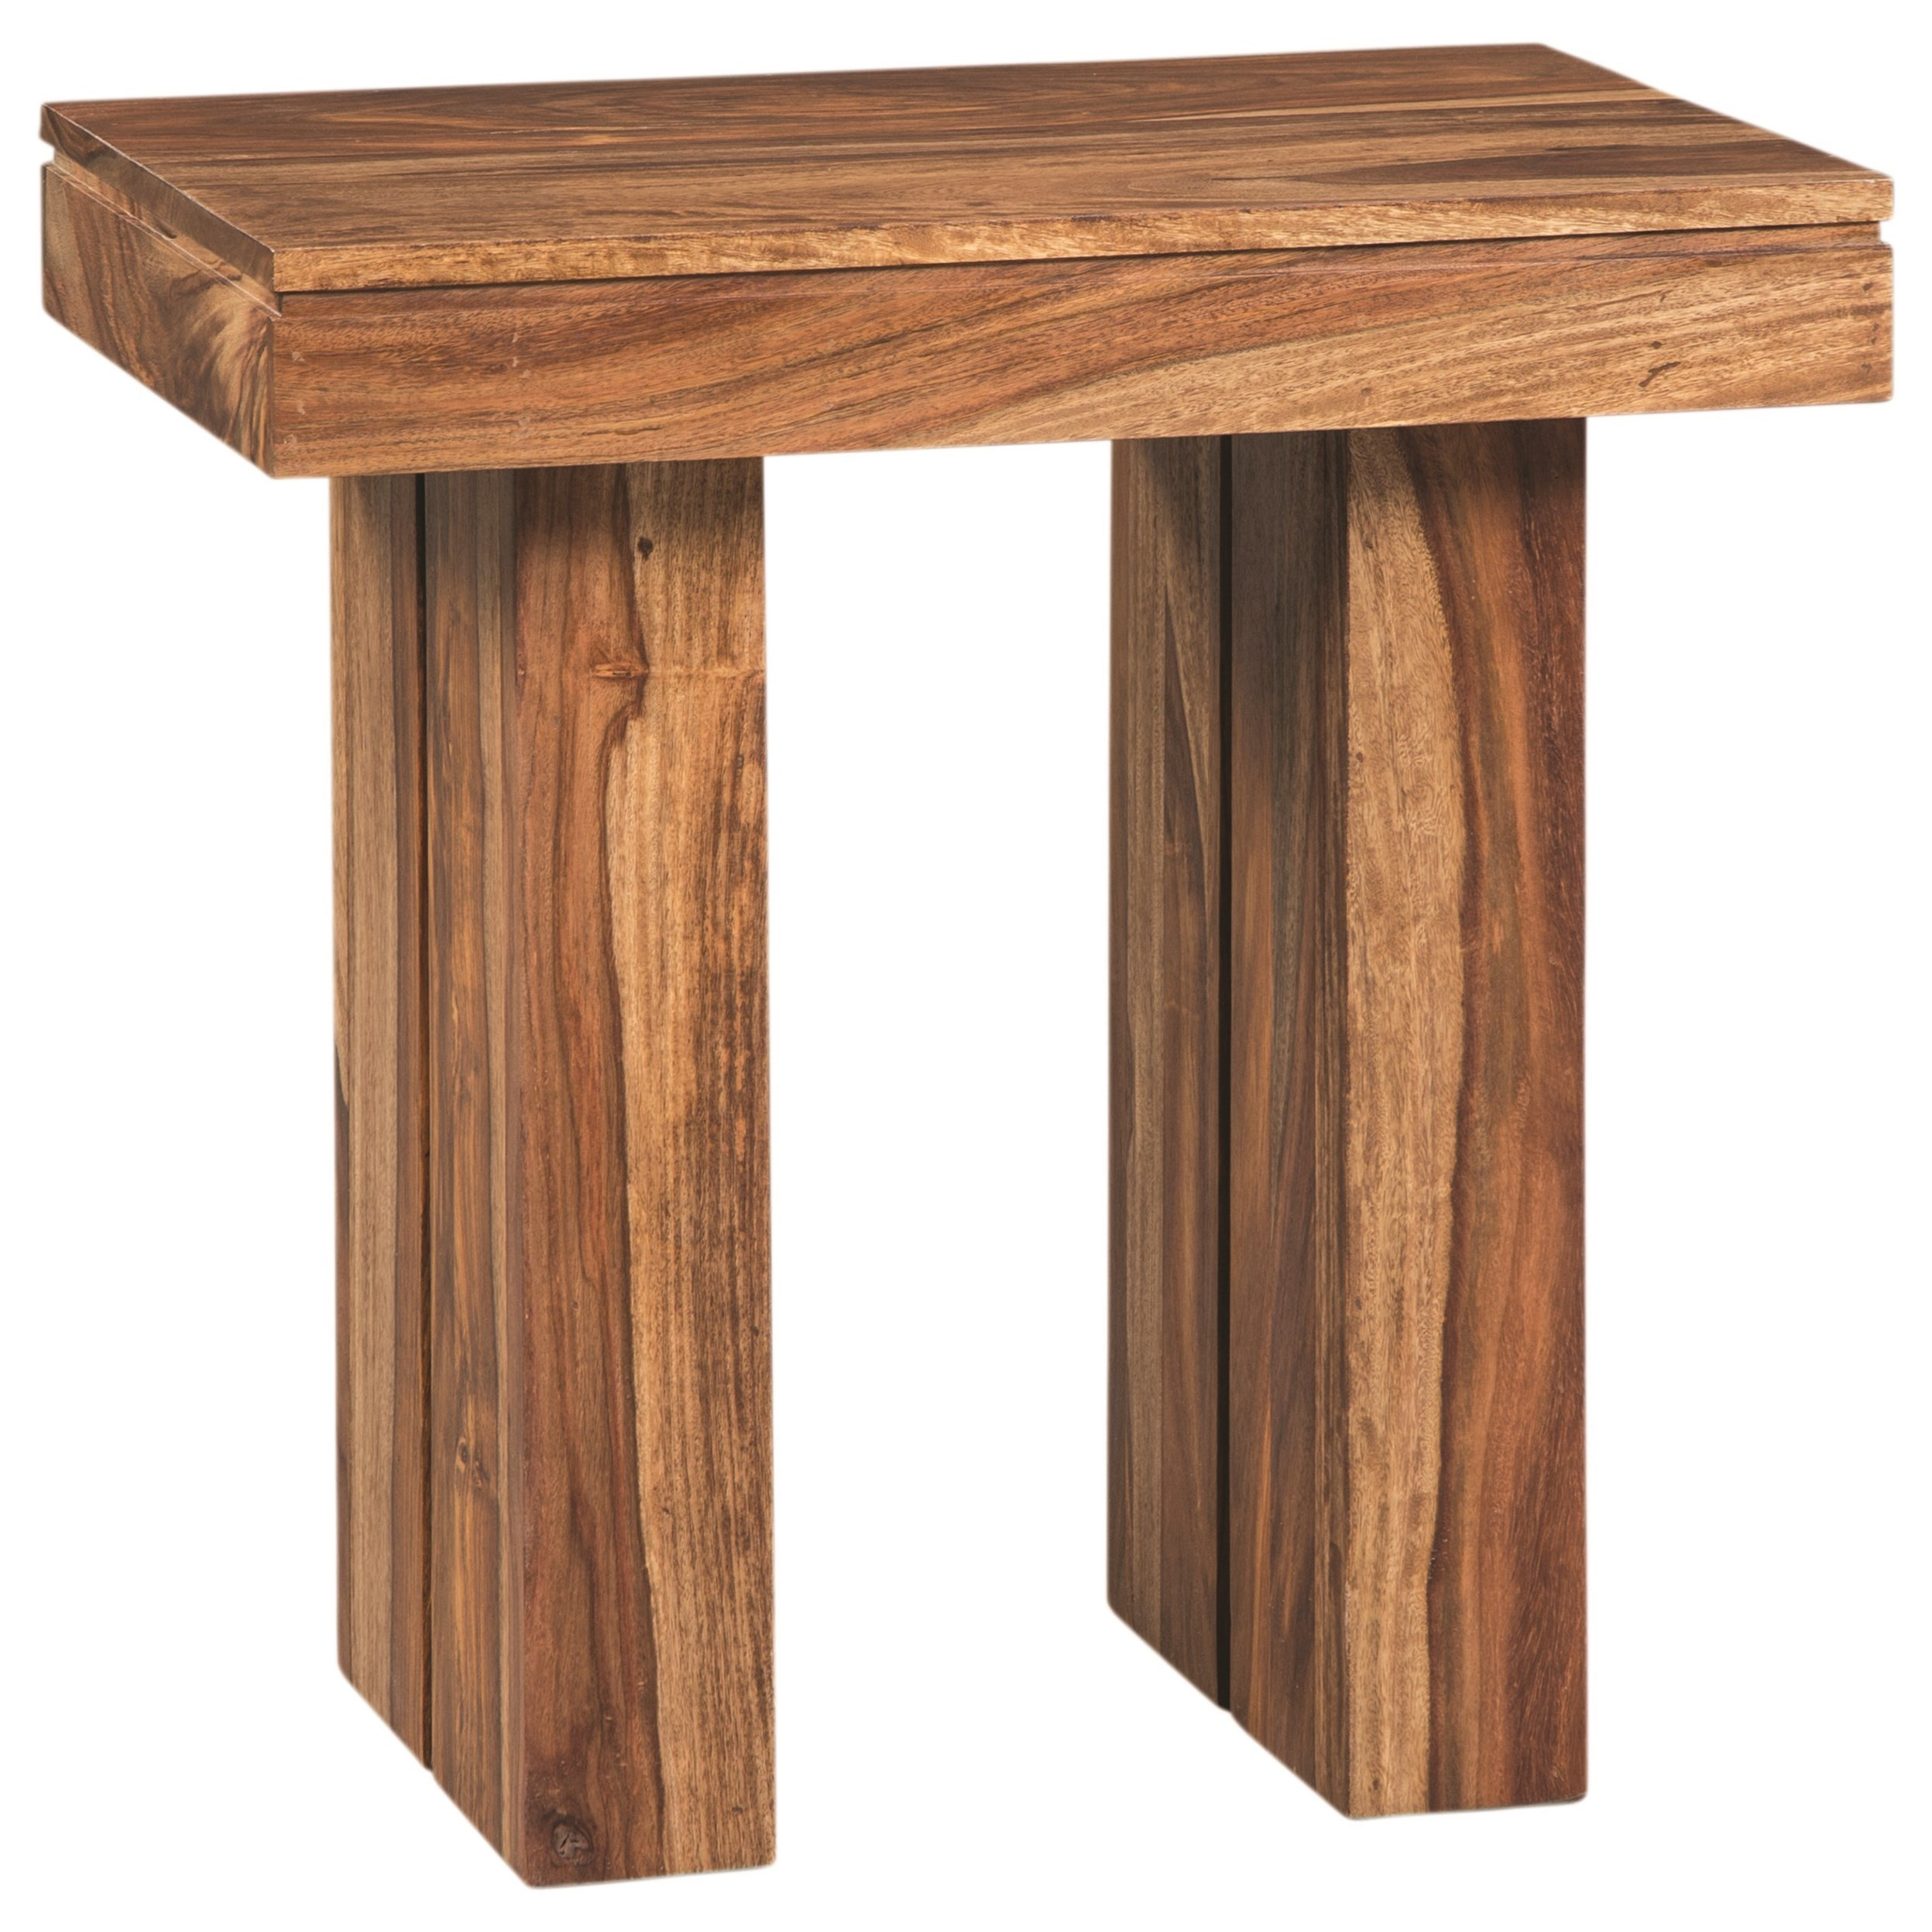 705847 rustic rectangular end table